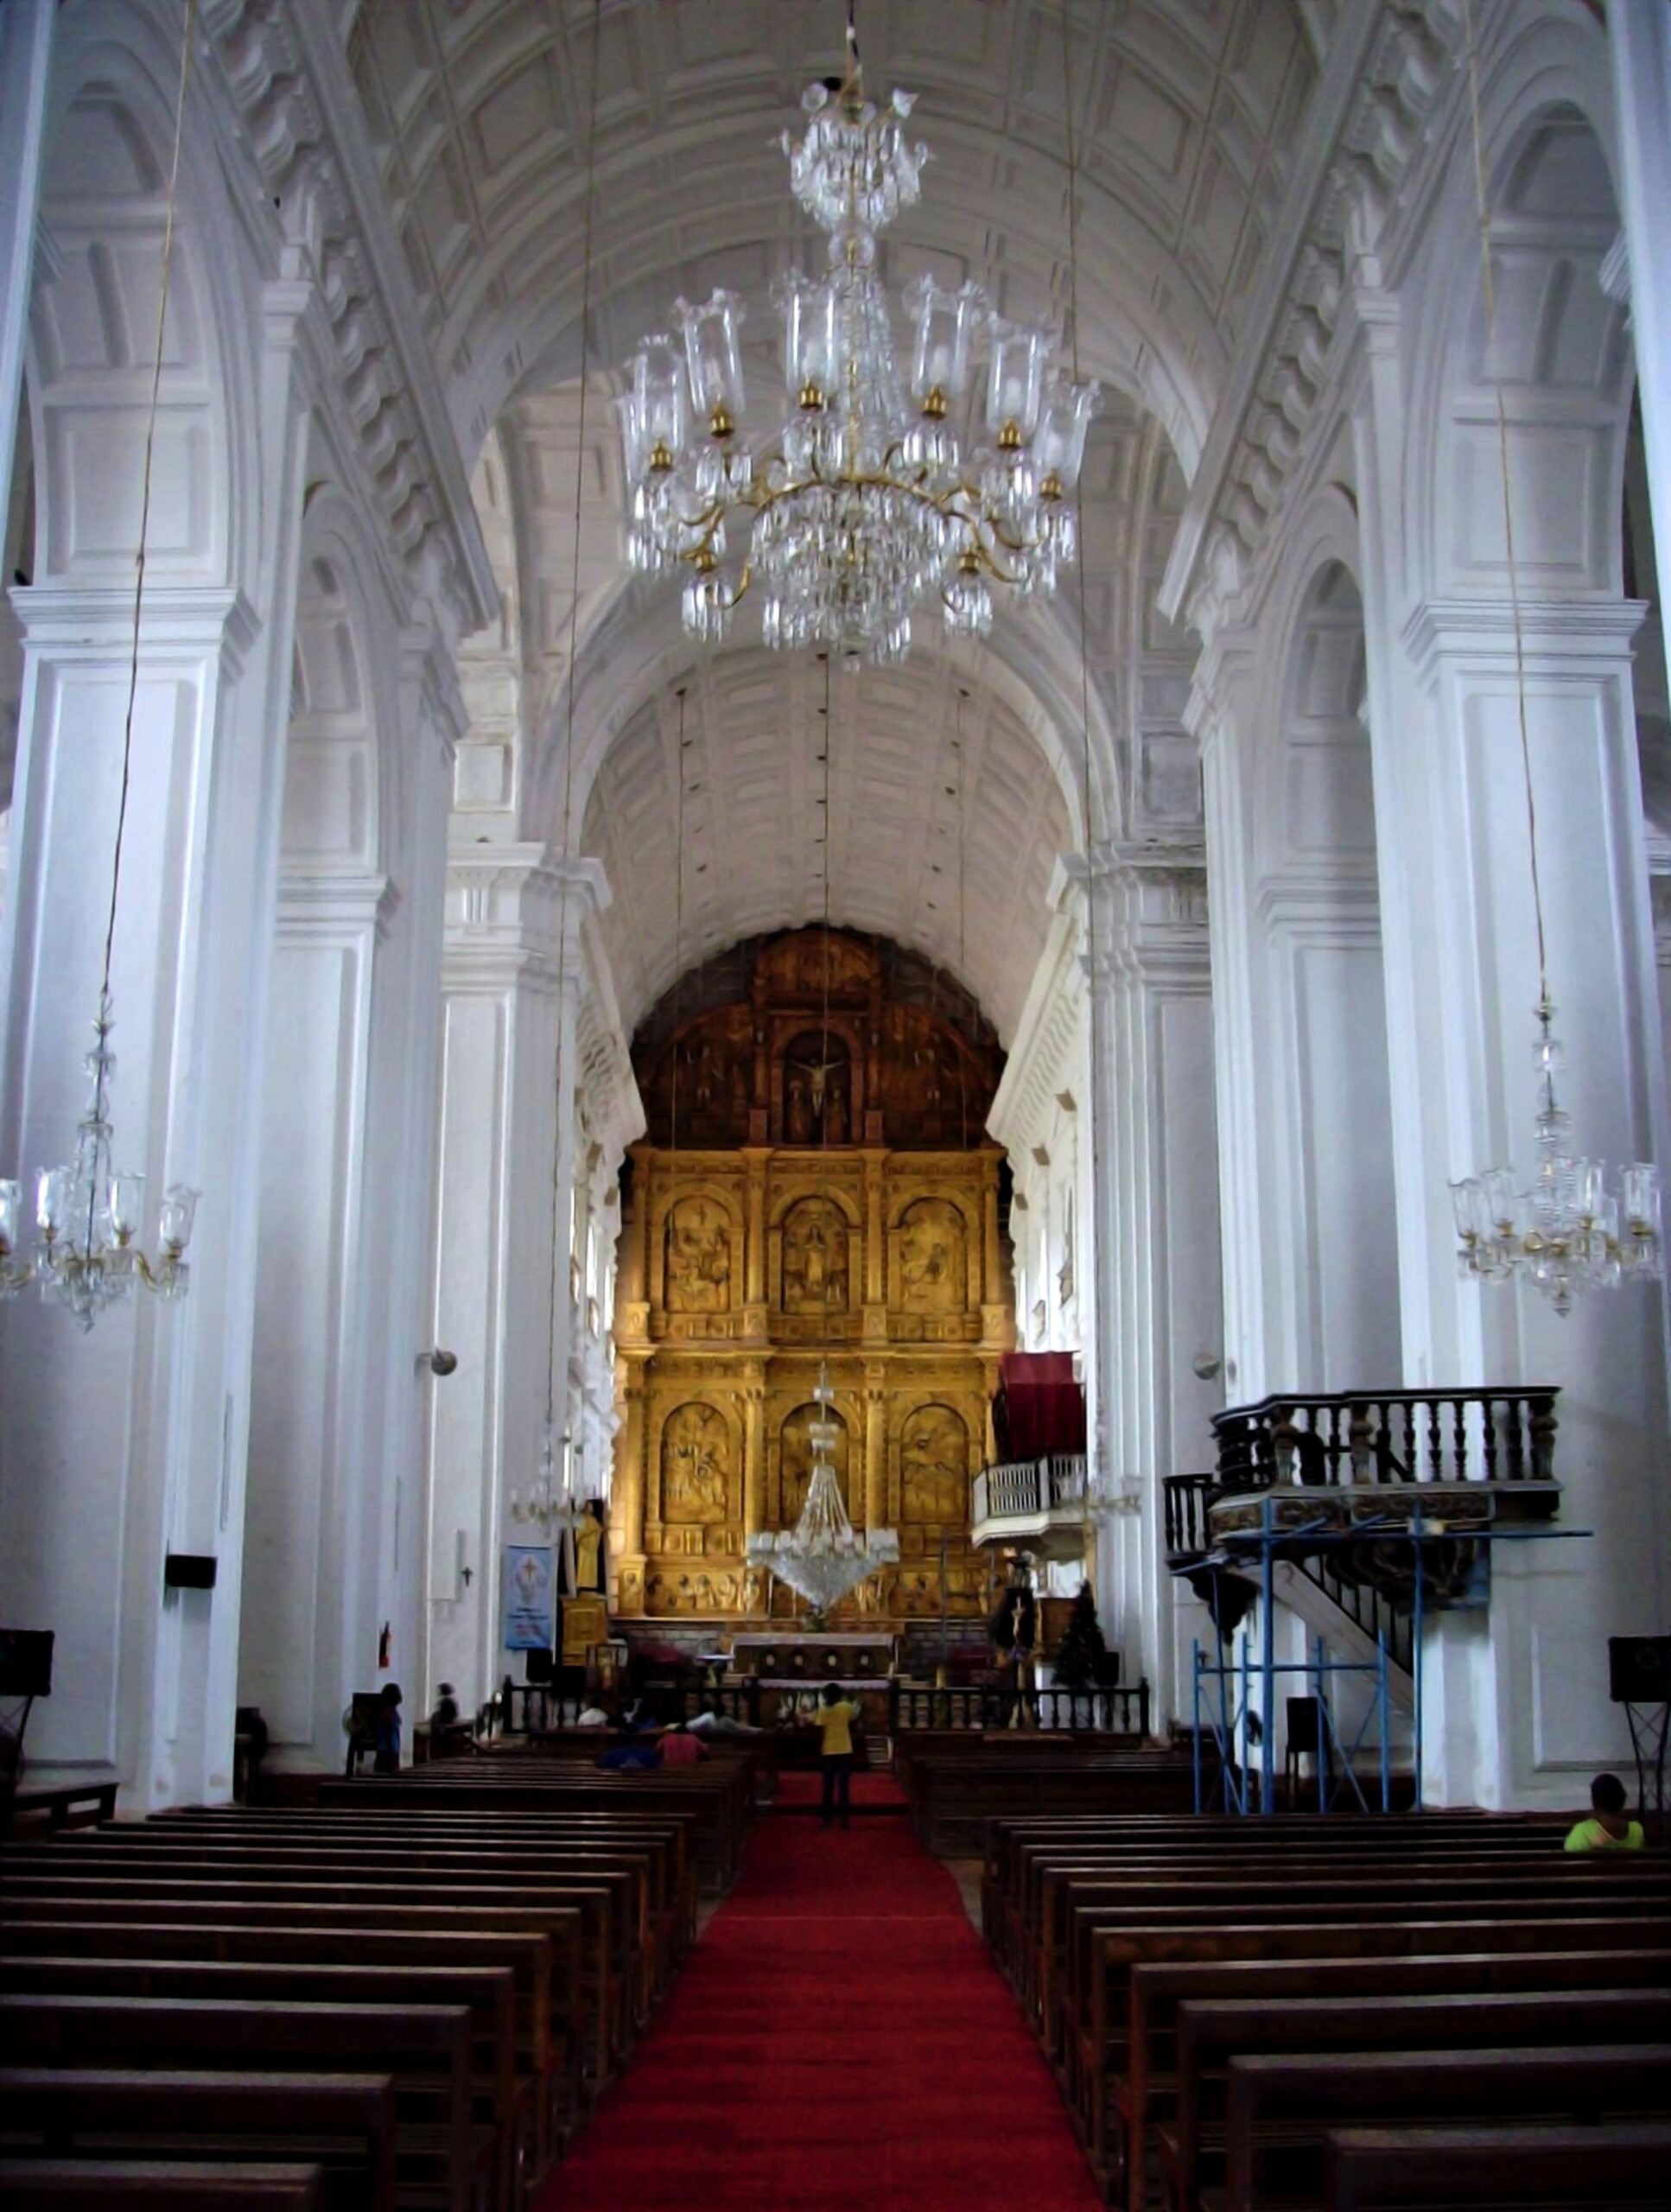 Interiors of Se Cathedral   PC - Wikimedia Commons